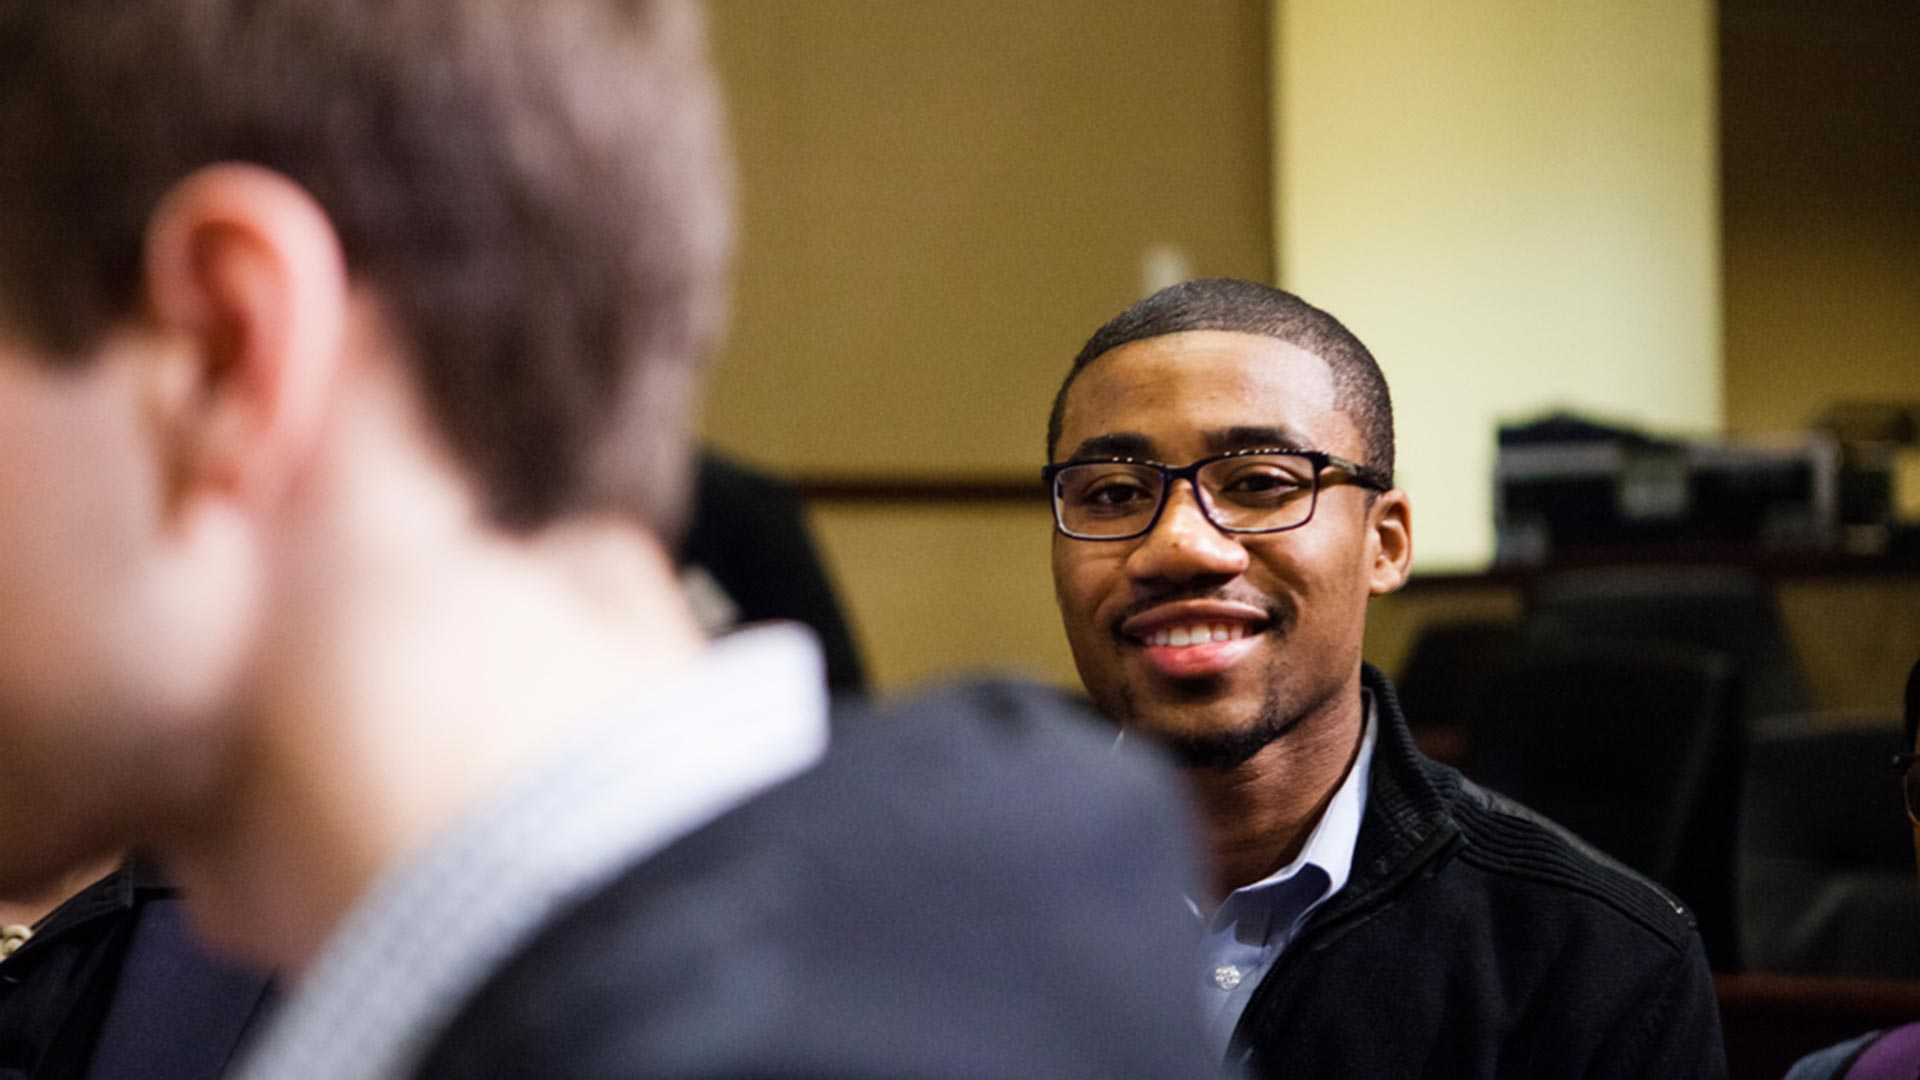 A guest waits in line to speak to someone at an Opus College of Business event.